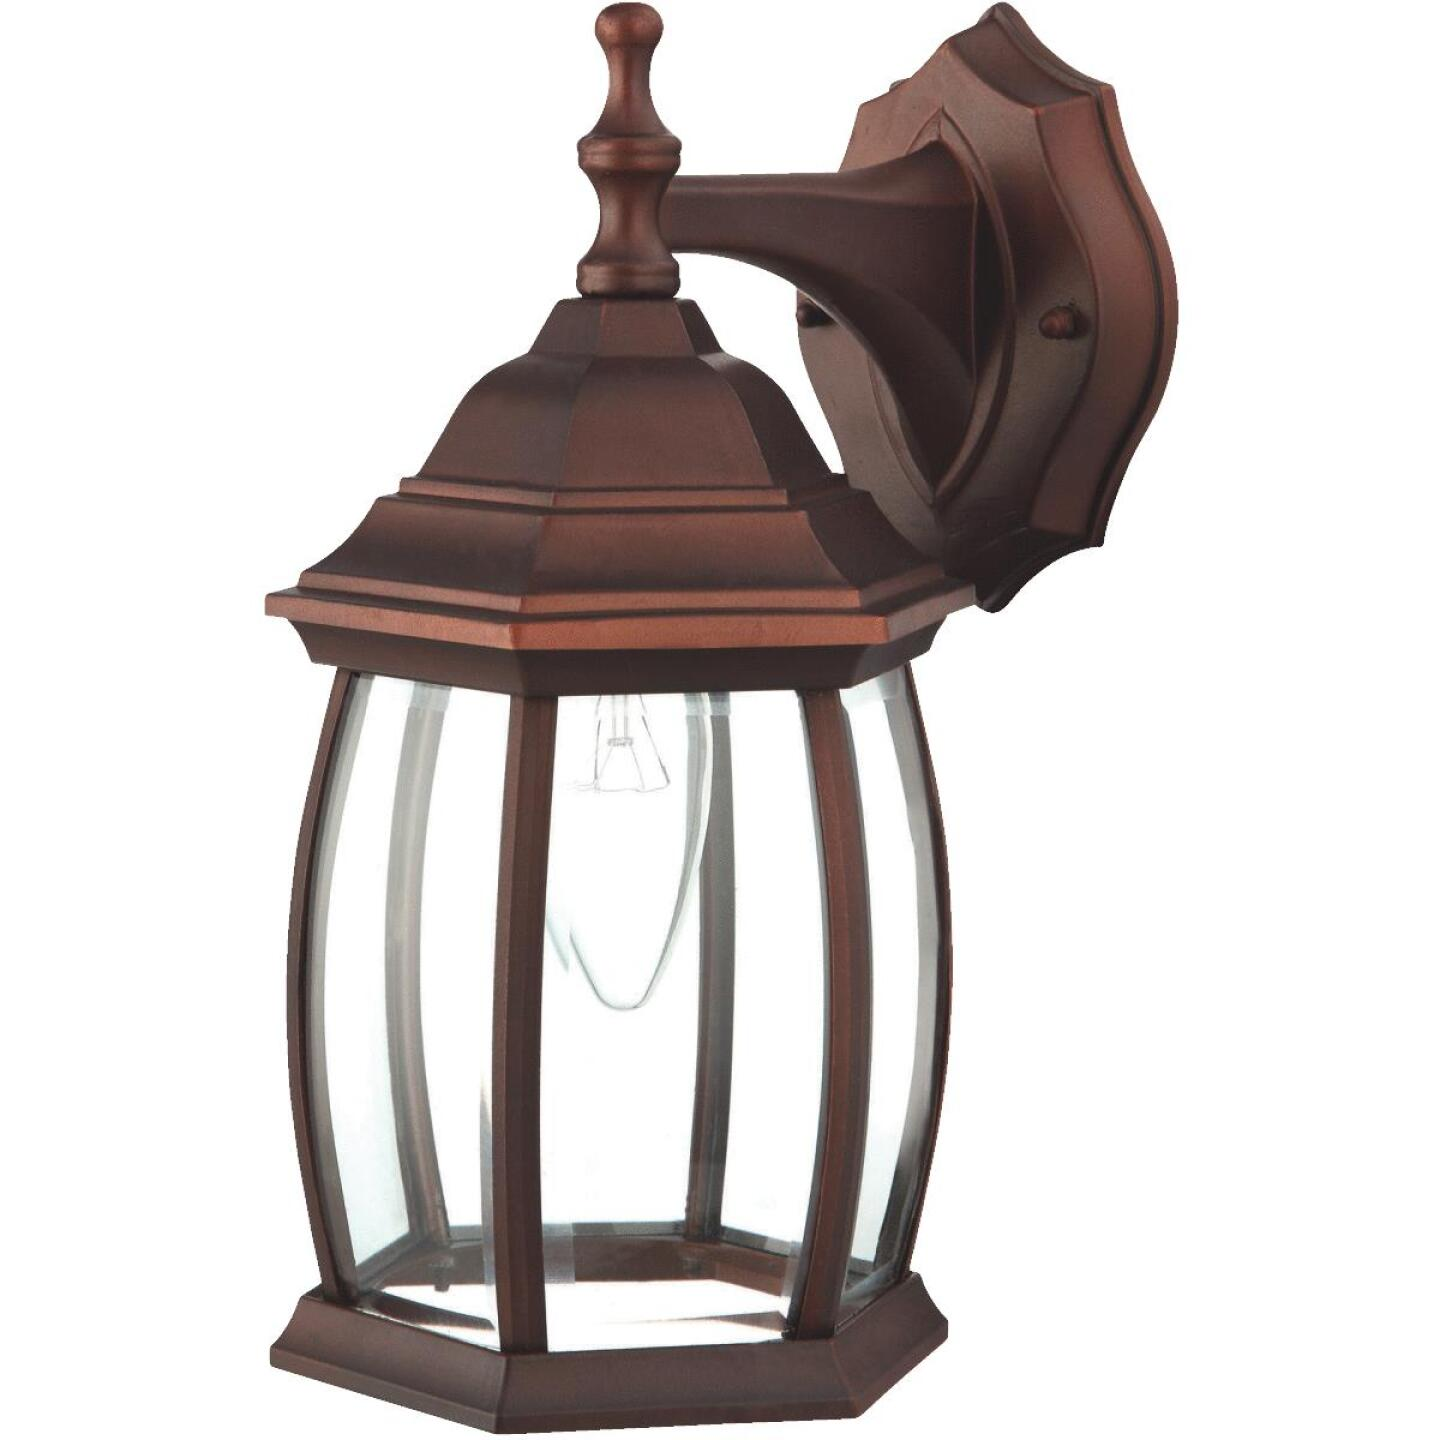 Home Impressions Antique Copper Incandescent Type A Outdoor Wall Light Fixture Image 1